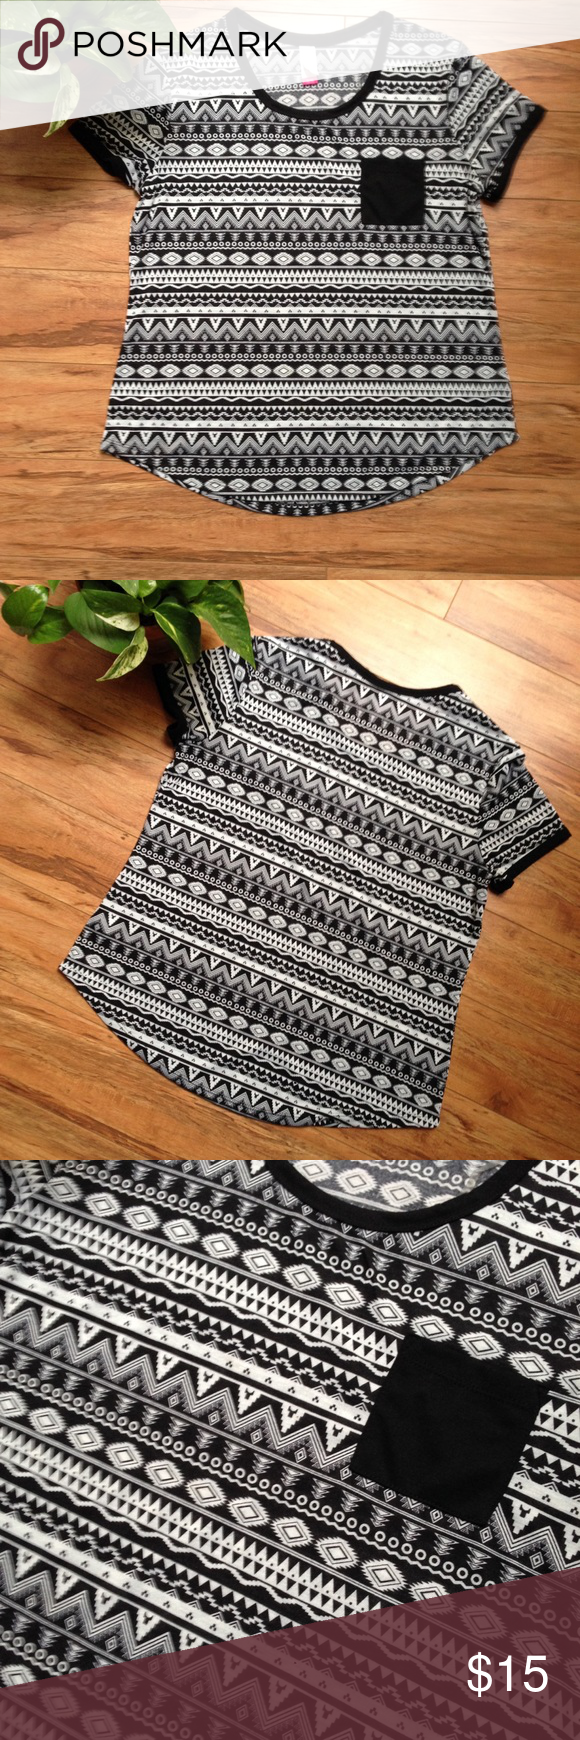 Tribal Print Pocket Tee Black and white tribal print with pocket tee.. Size xl(true to size) new never worn without tags..if you have any questions feel free to ask❤️NOT BRANDY Brandy Melville Tops Tees - Short Sleeve